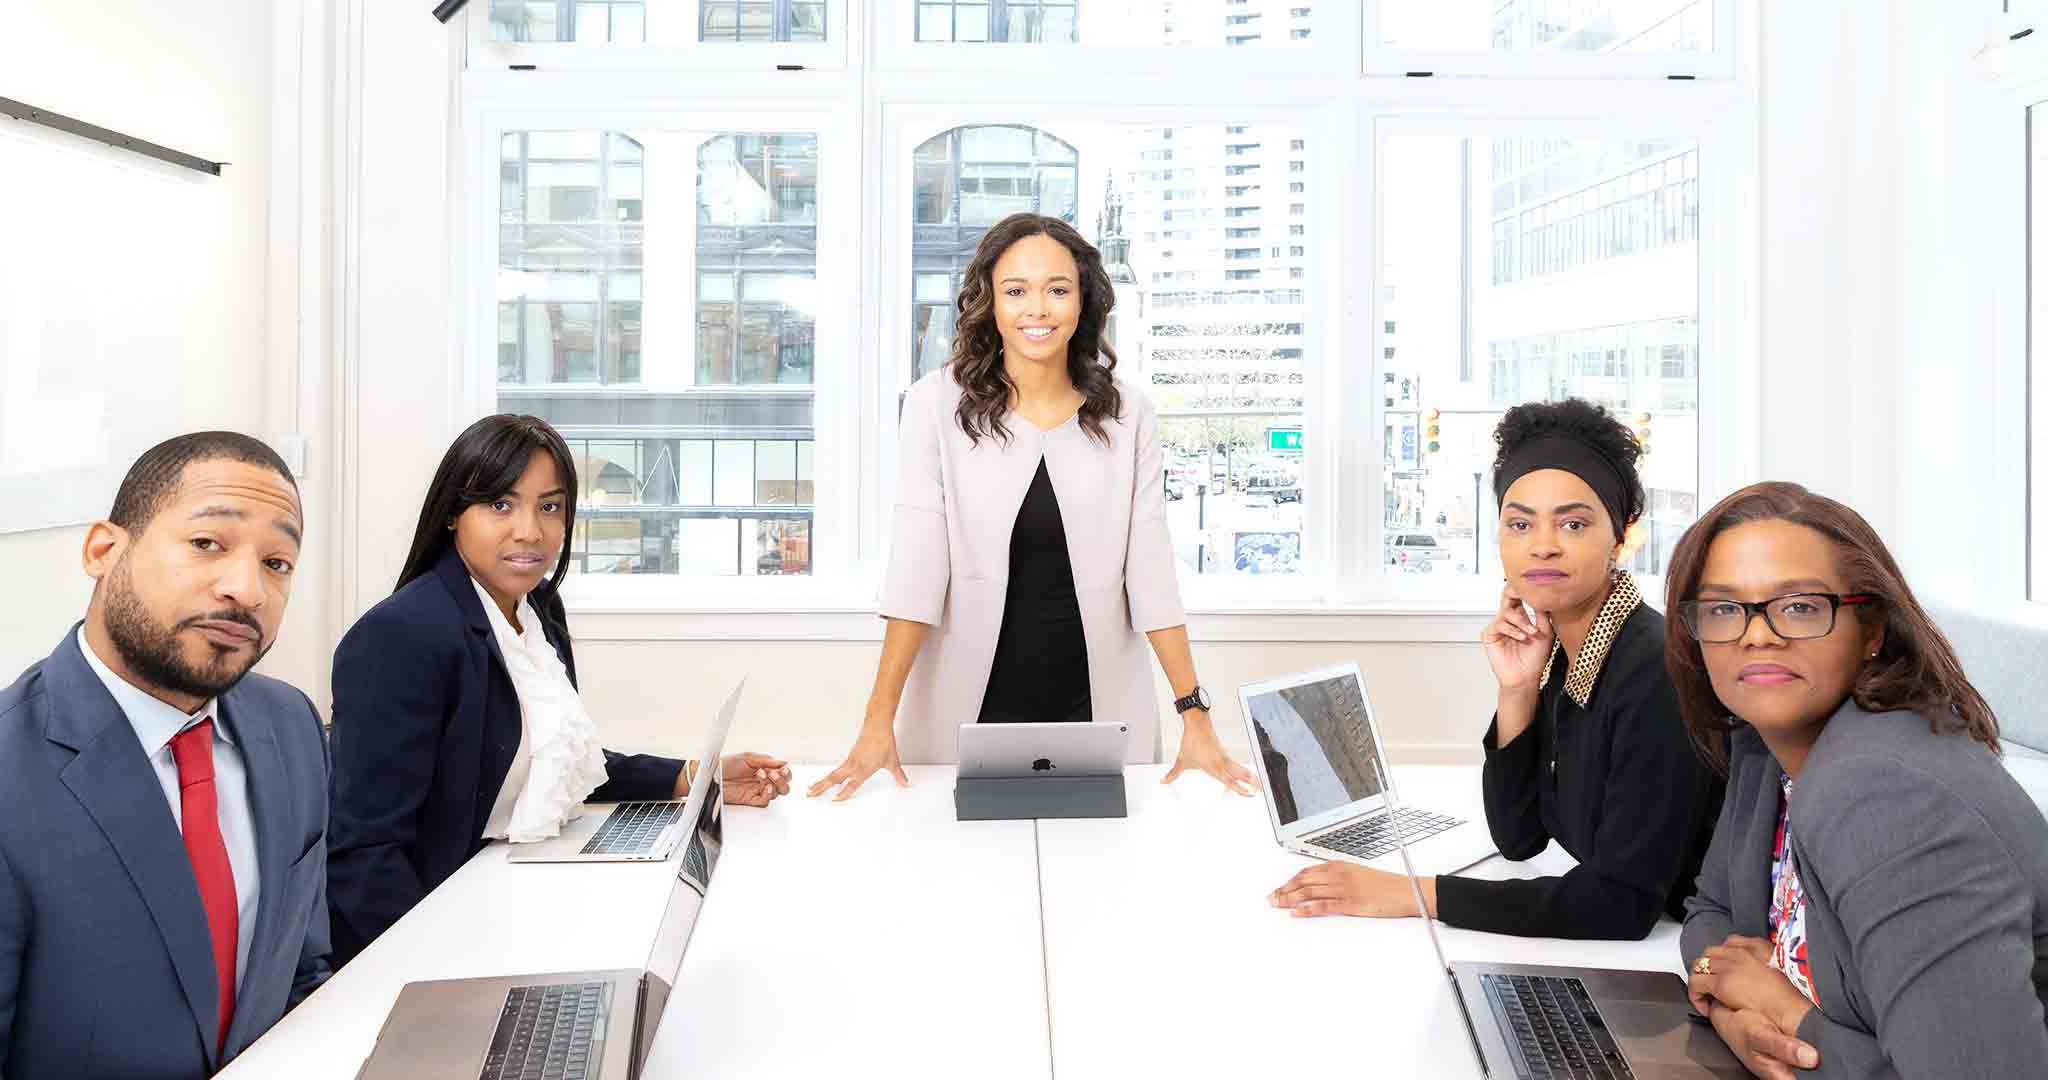 adult communication conference room human stock photos